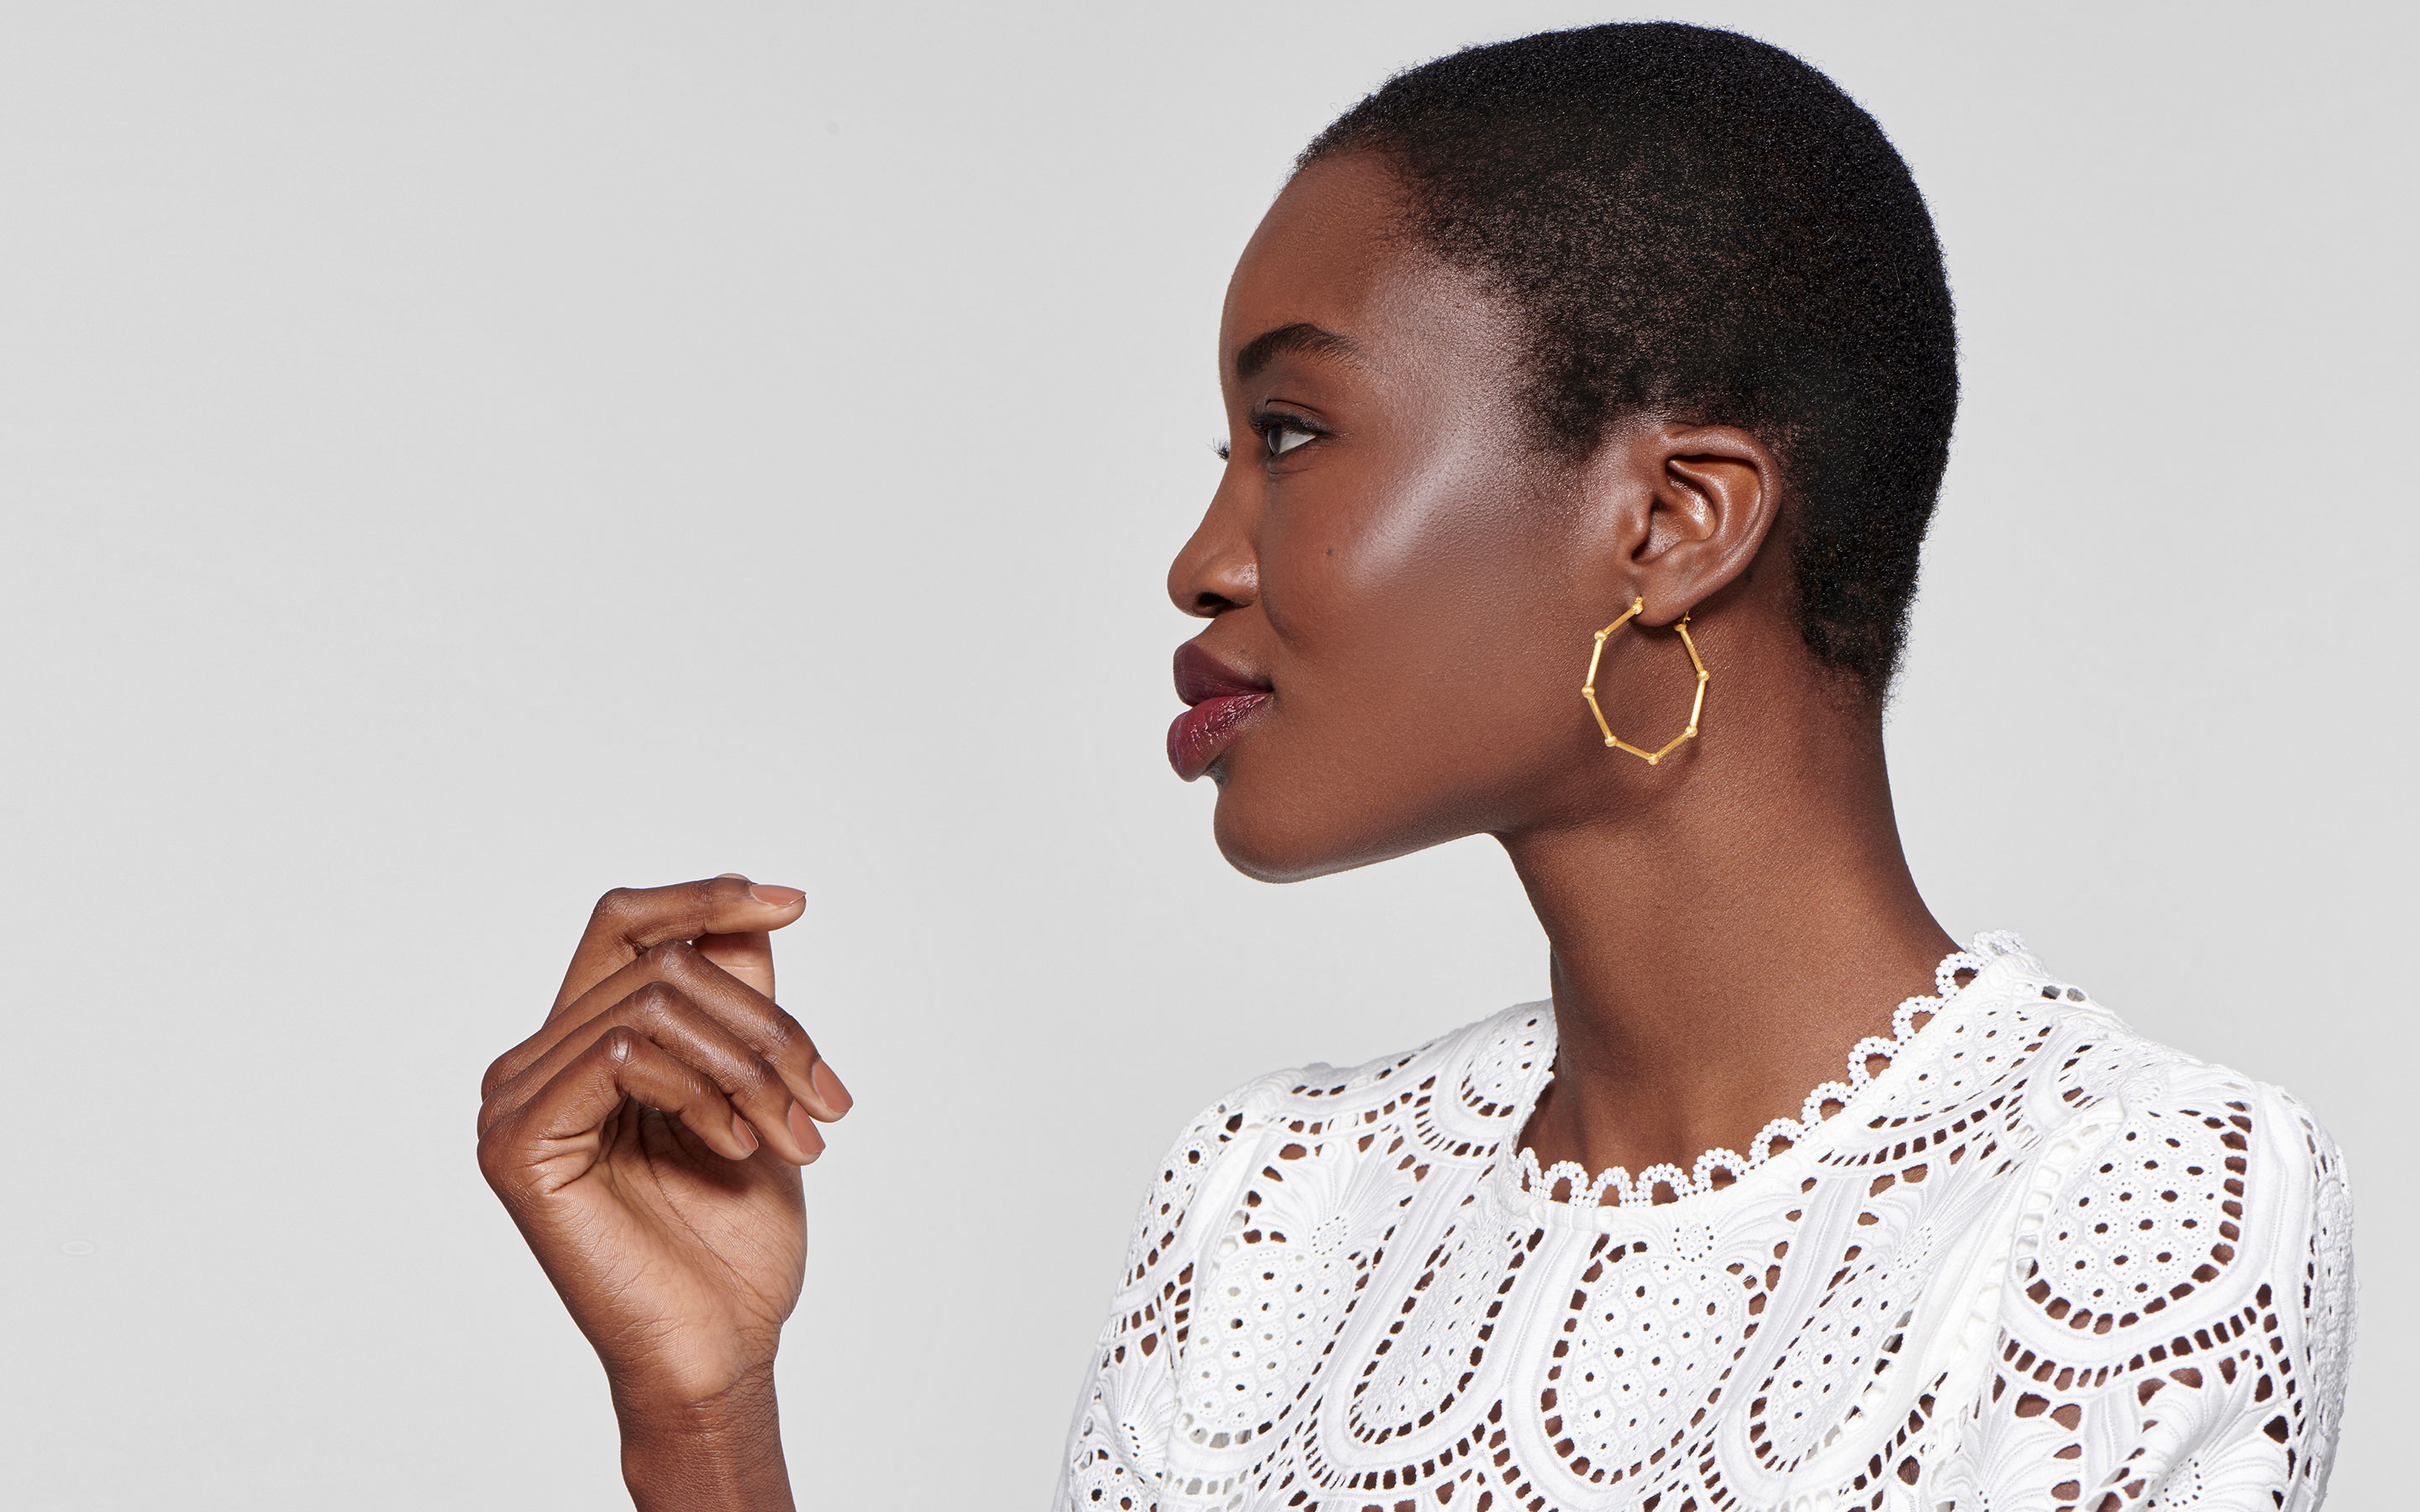 statuesque black model presenting luminous hoop style earrings made of 22 karat gold in satin finish